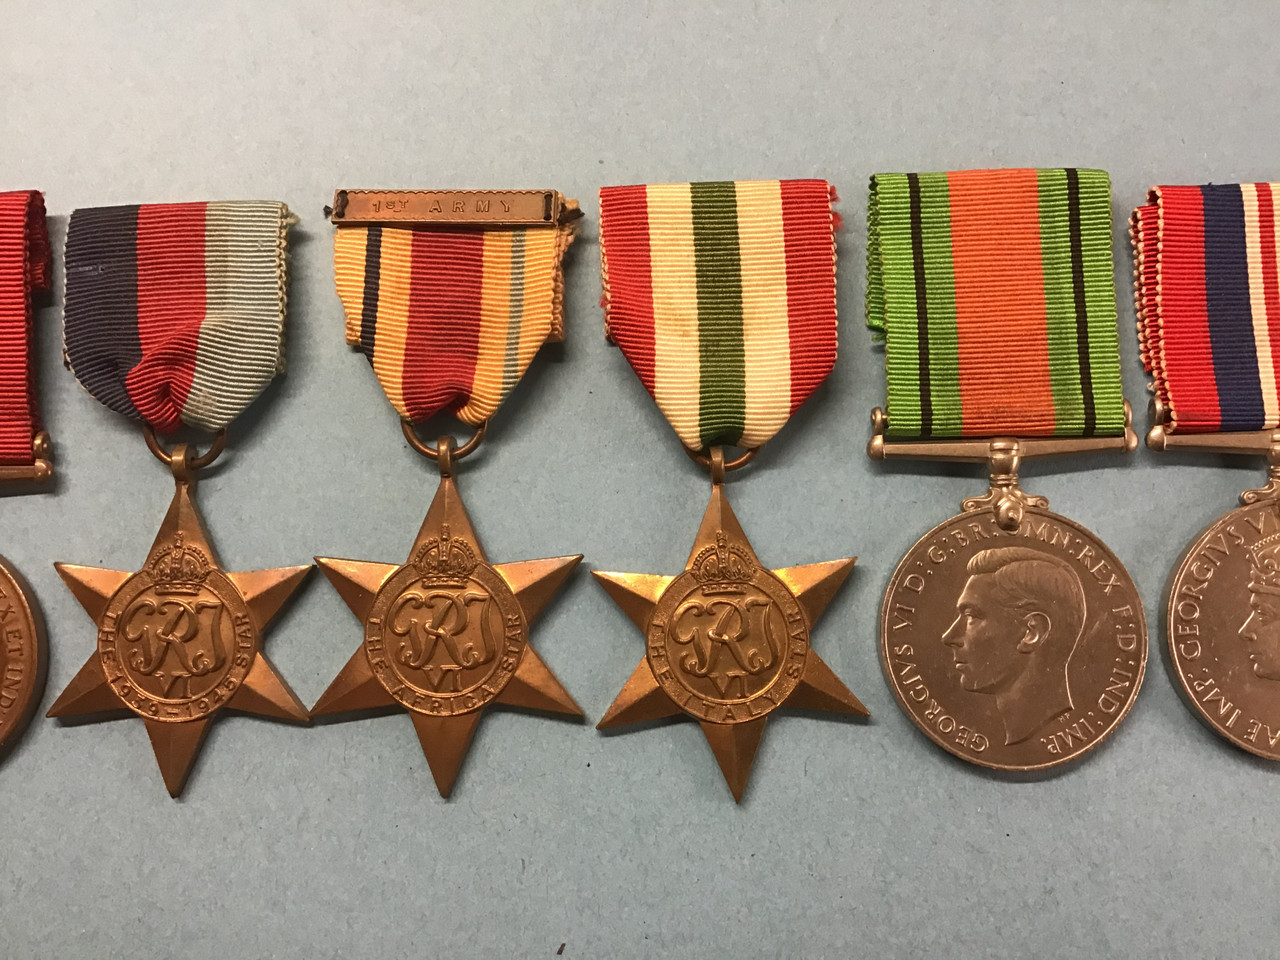 GD 934 GROUP OF EIGHT WWI/WW2 MEDALS